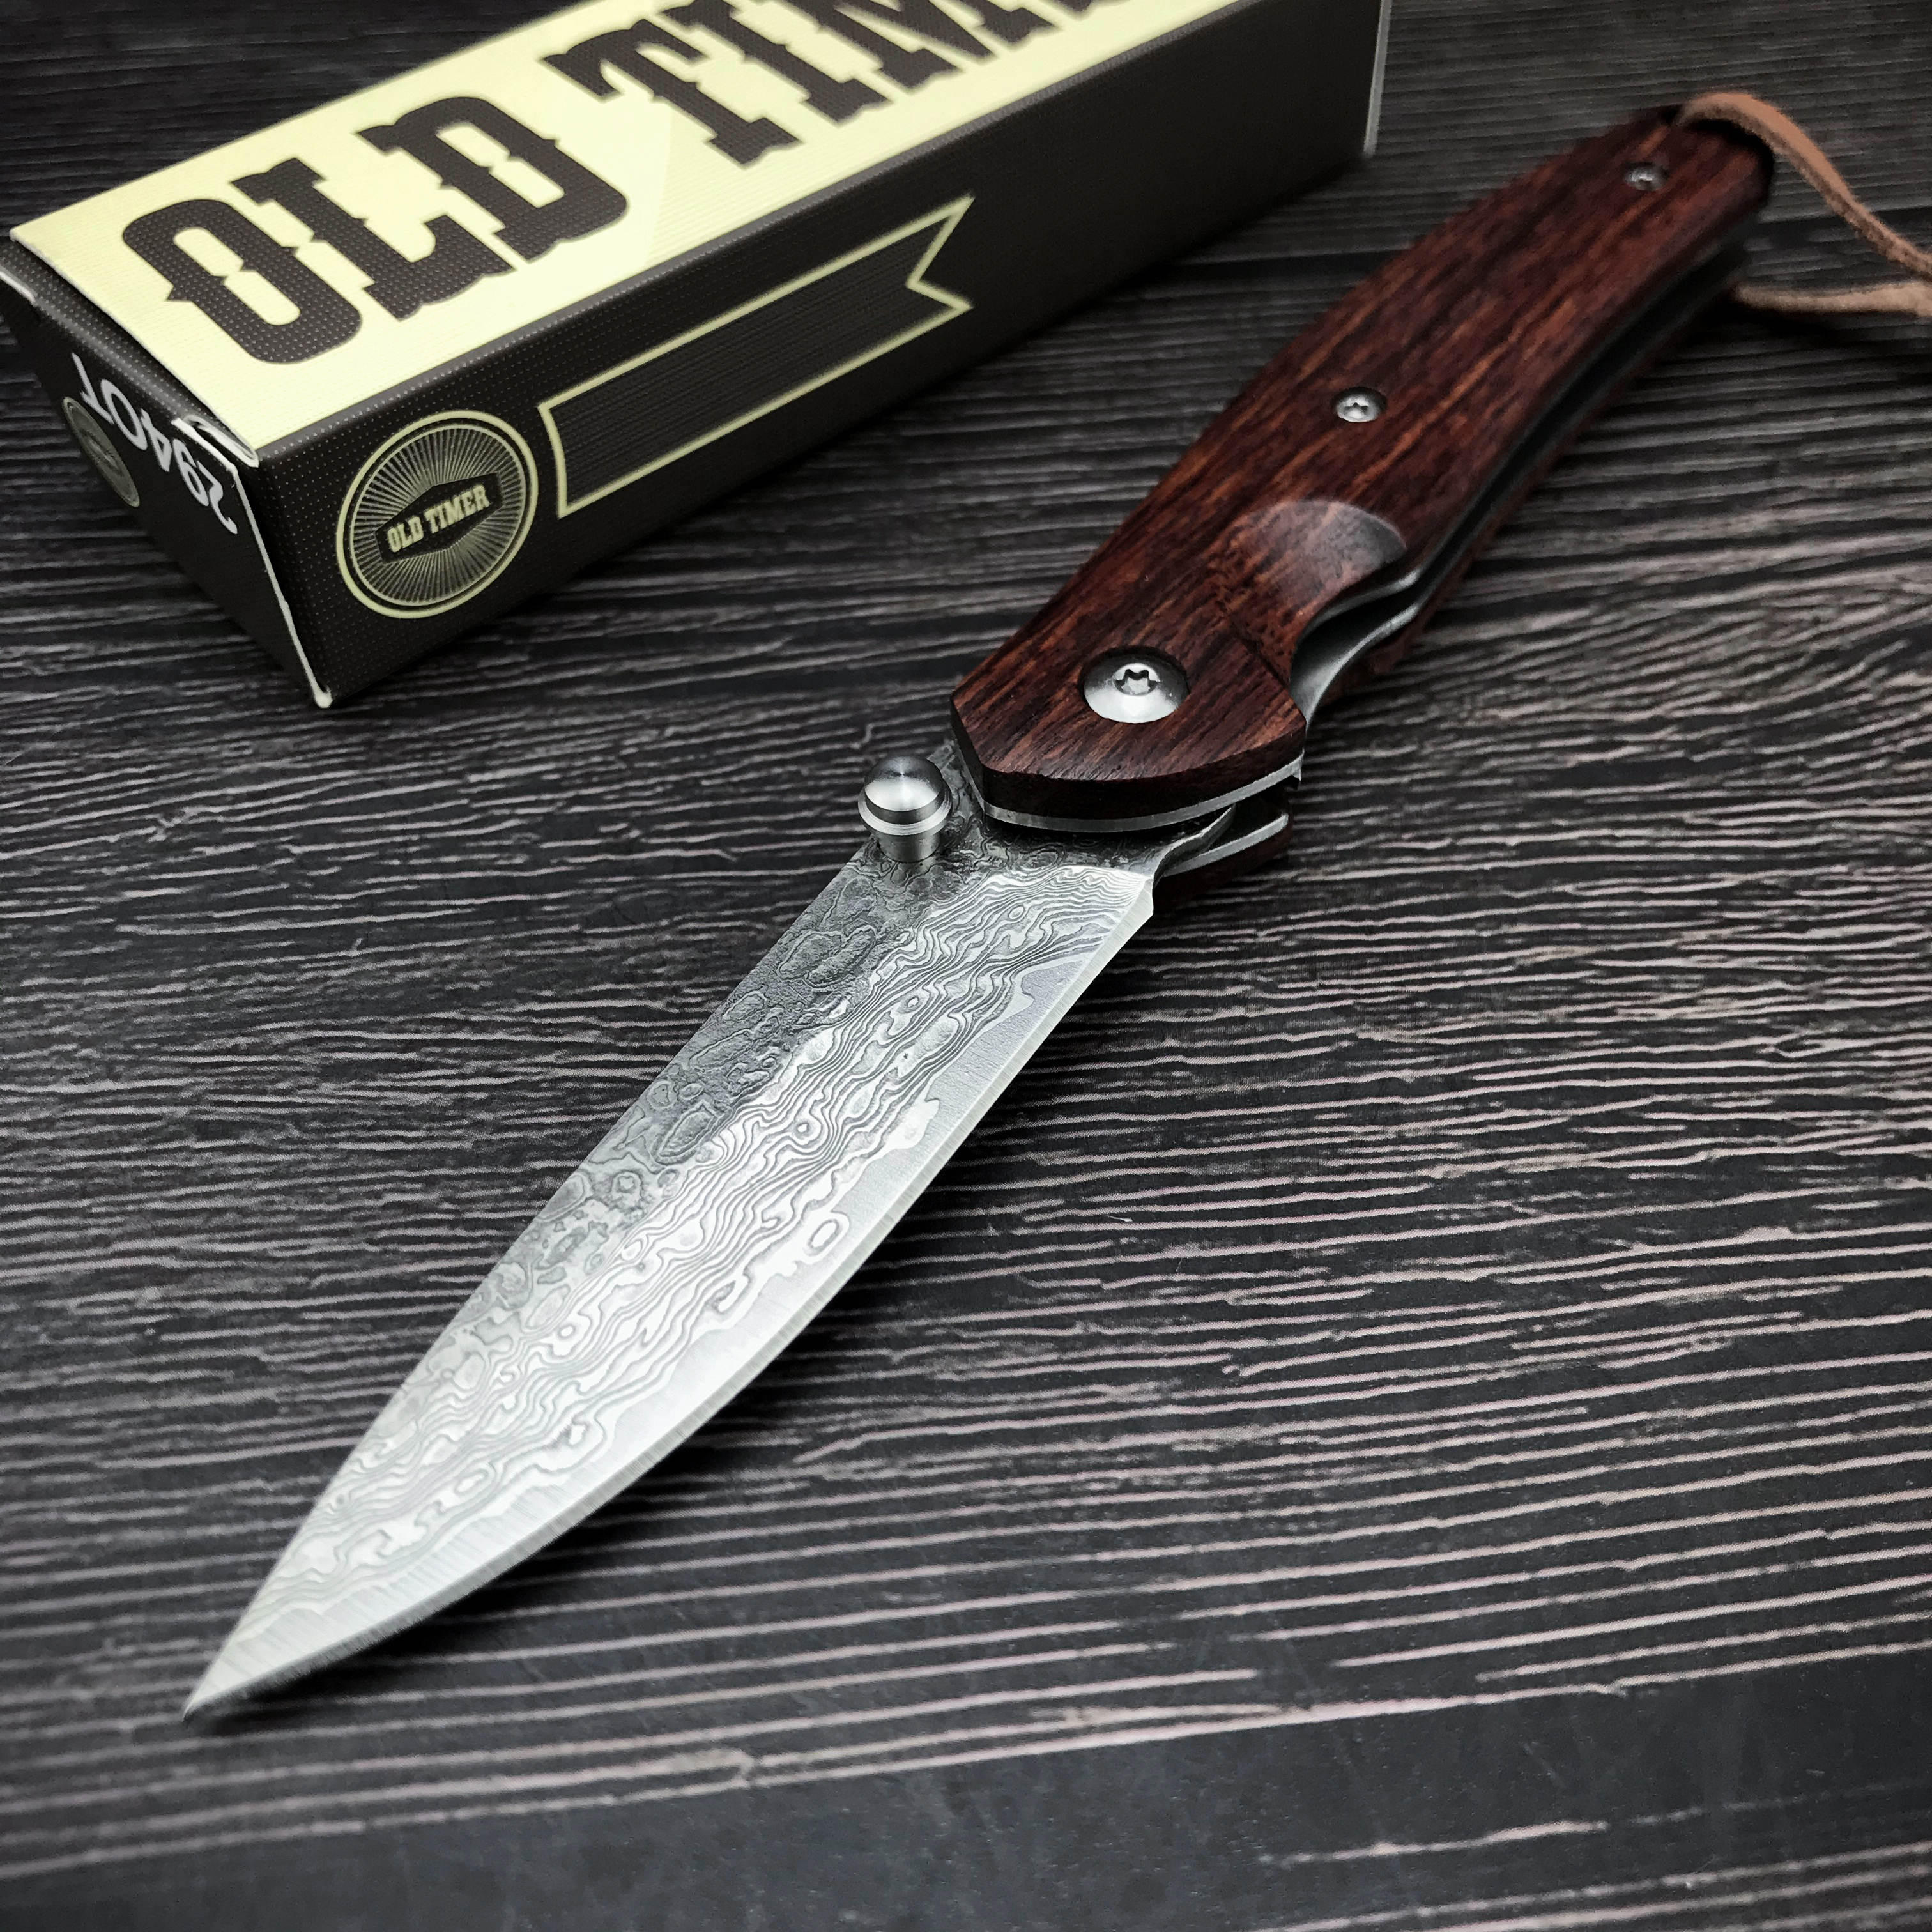 new 2142 folding pocket camping knife 7cr14 blade aluminum alloy handle outdoor tactical hunting survival fruit knives edc tools Damascus Knives Tactical Hunting Mechanical Folding Knife Fixed Blade Outdoor Camping Survival EDC Pocket Defense Tools